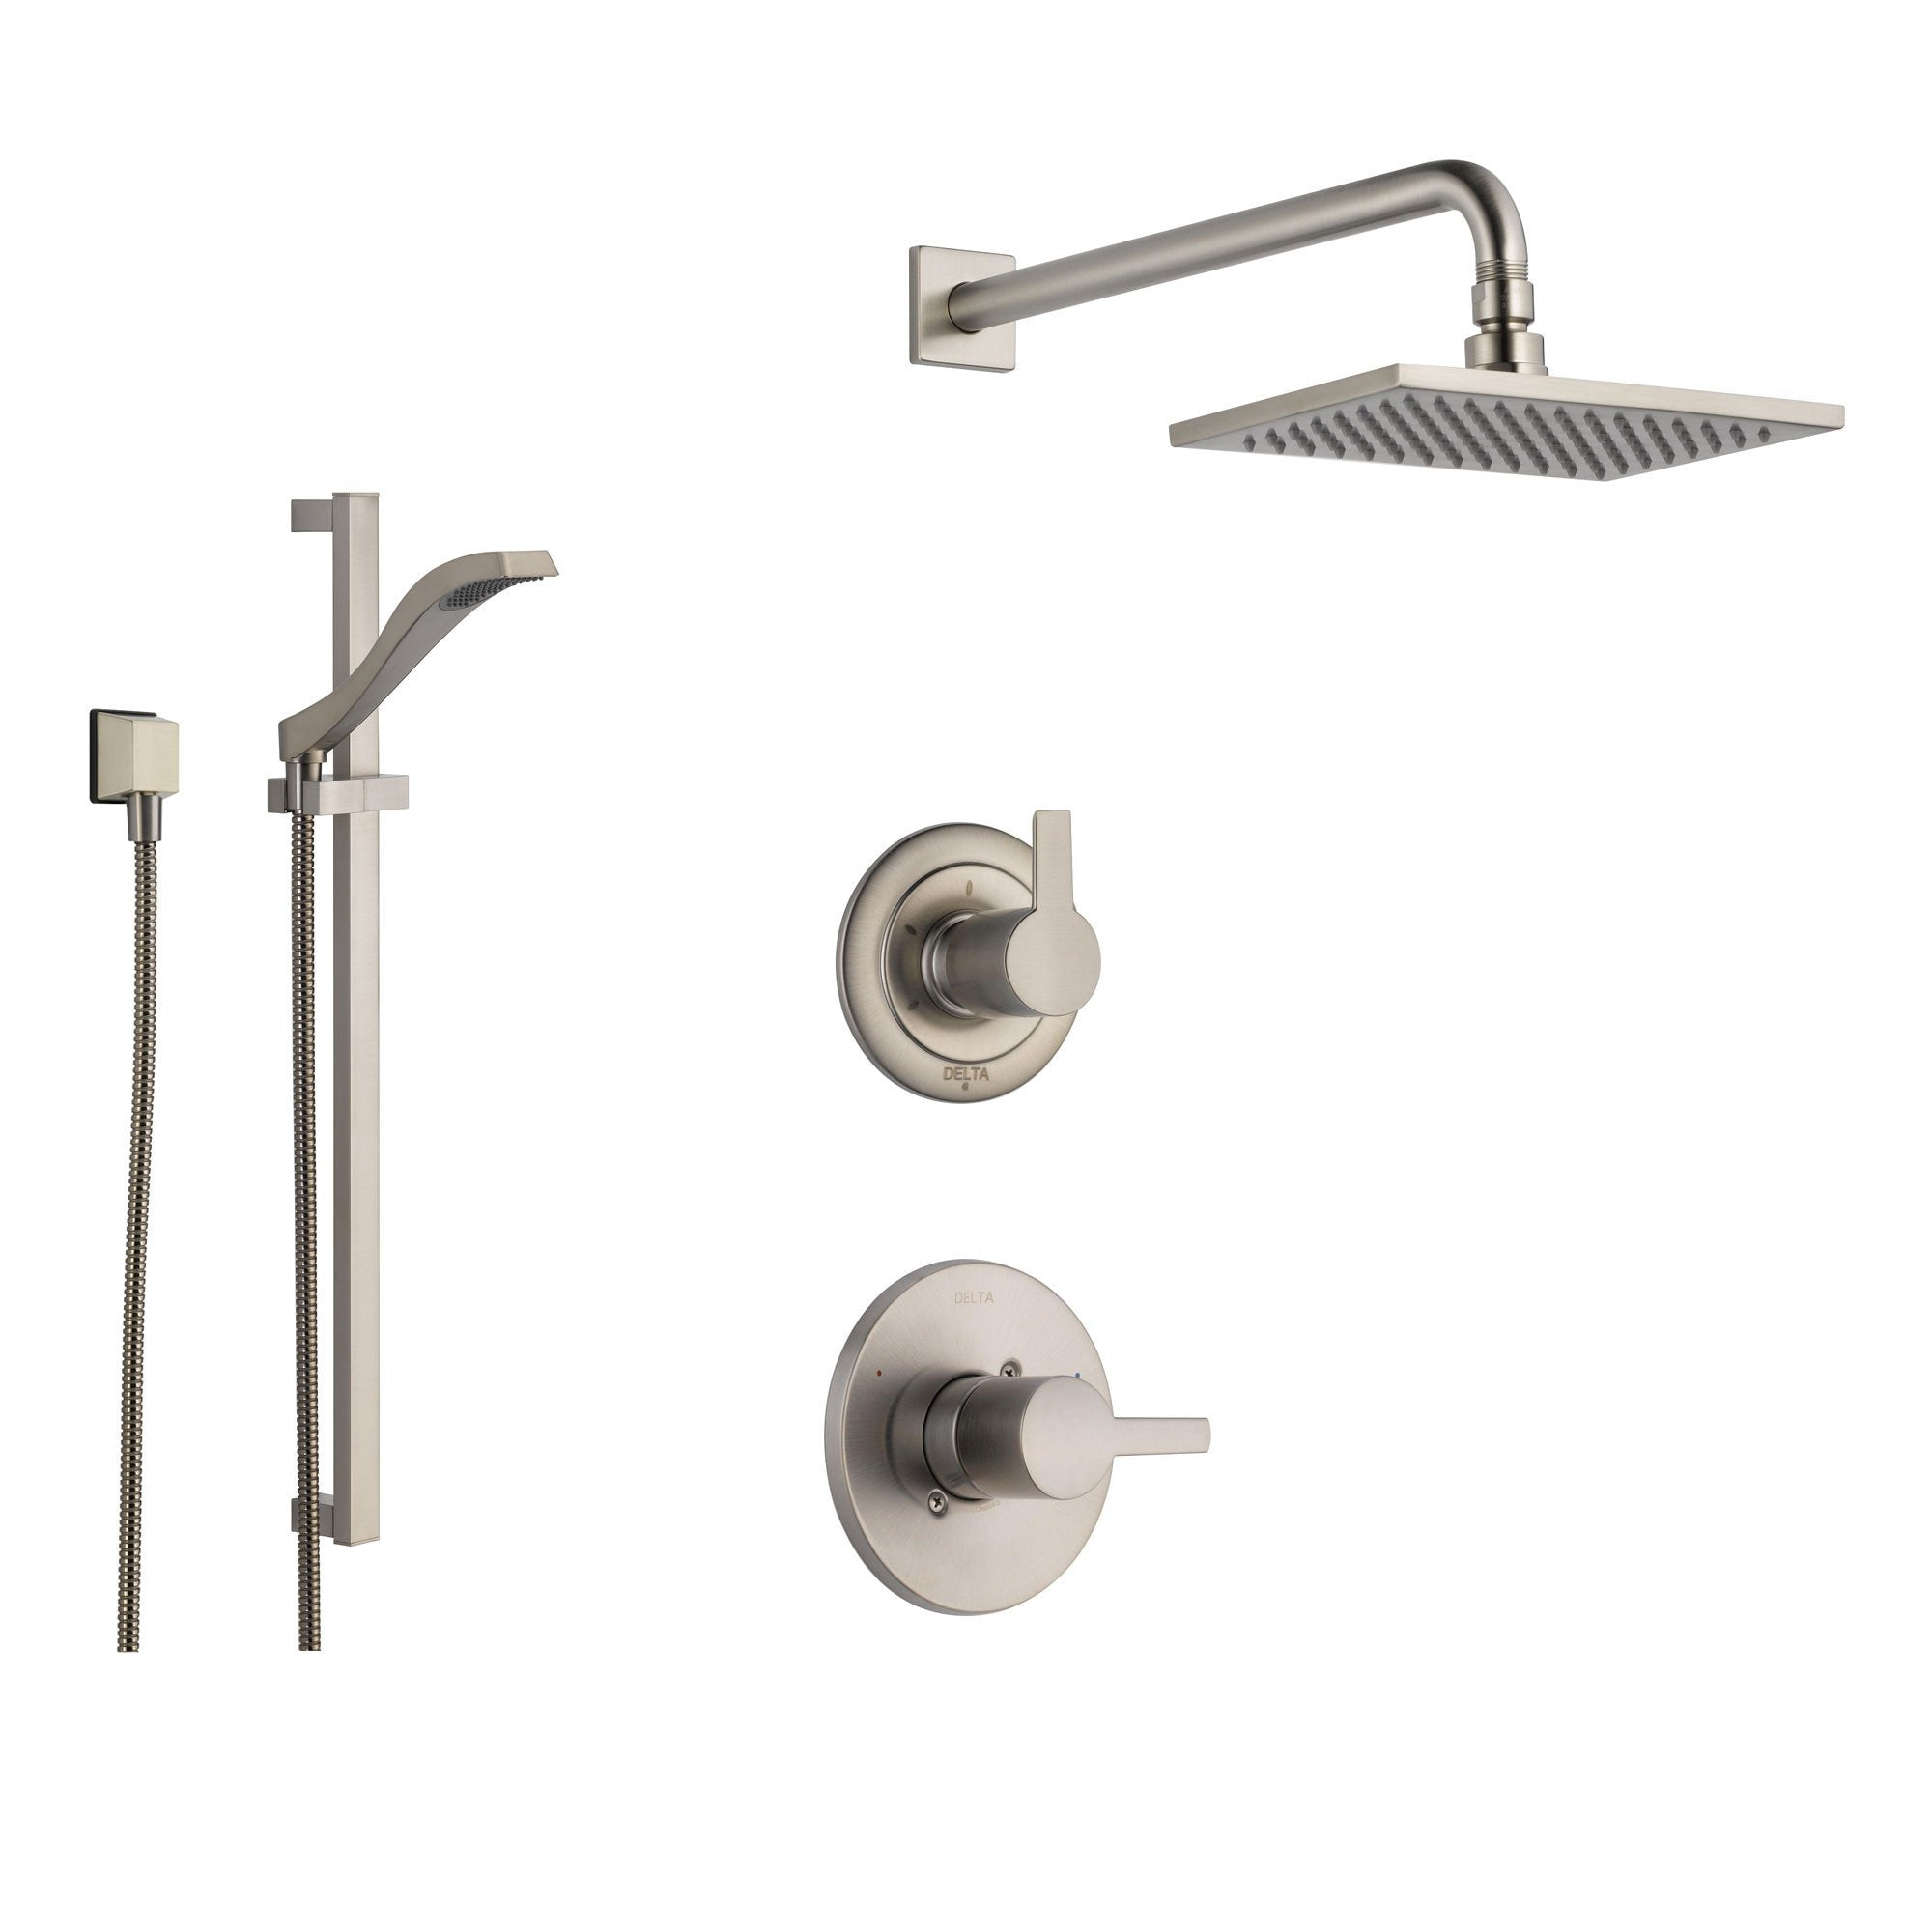 Delta Compel Stainless Steel Shower System with Normal Shower Handle, 3-setting Diverter, Large Square Rain Showerhead, and Handheld Shower SS146182SS